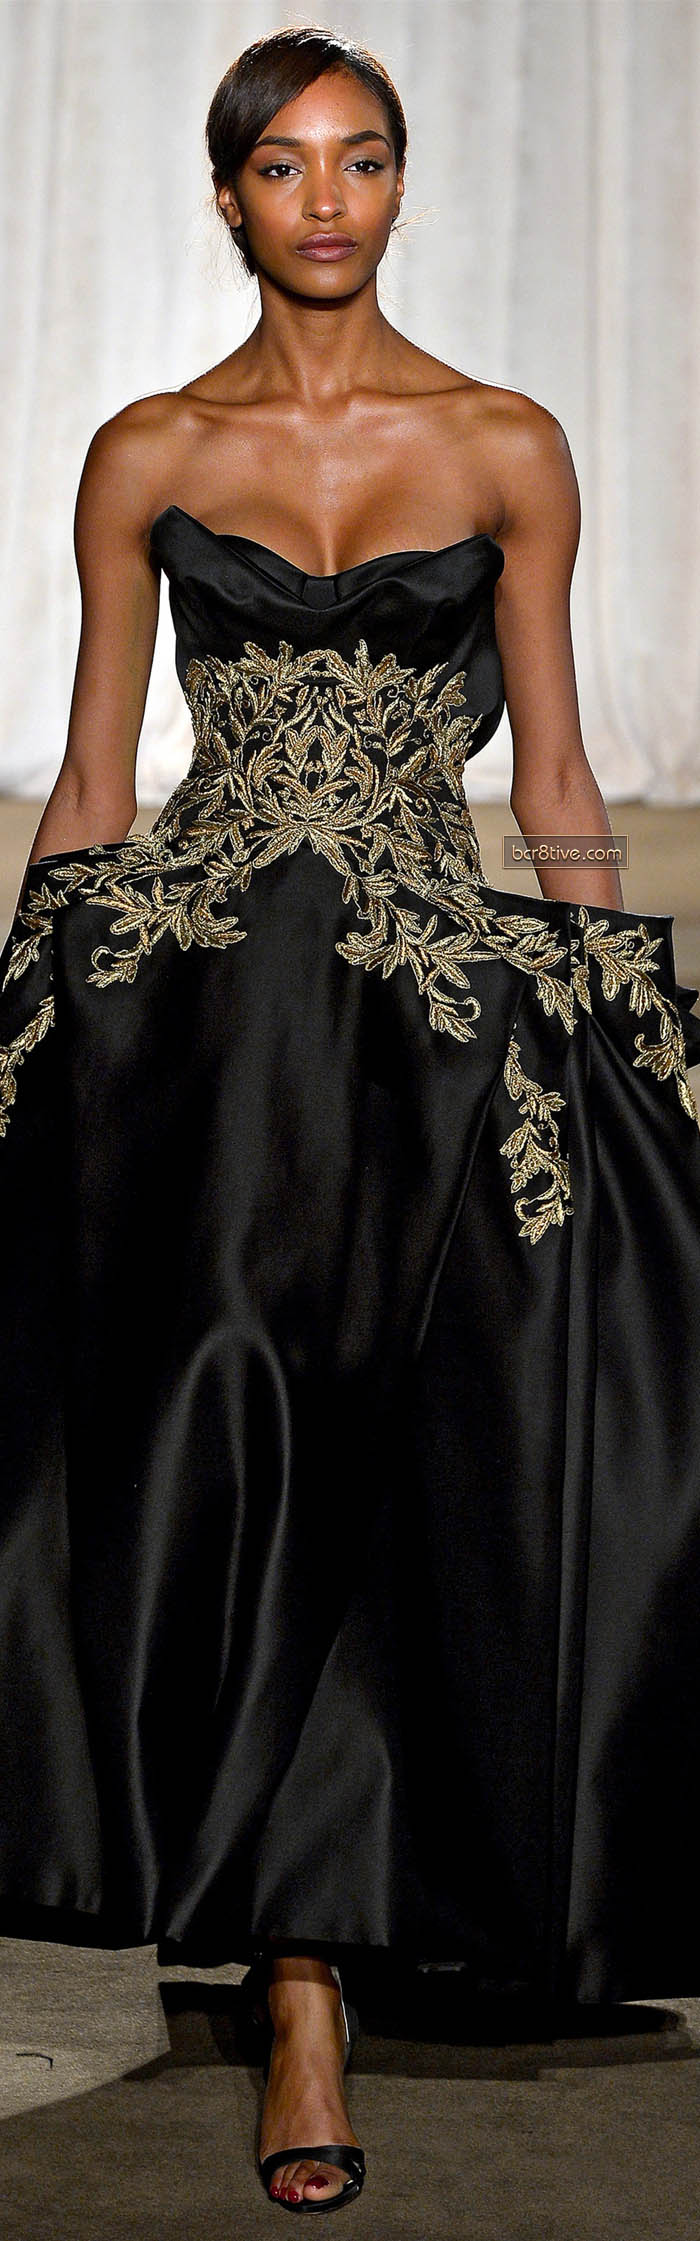 Marchesa Fall Winter 2013 New York Fashion Week